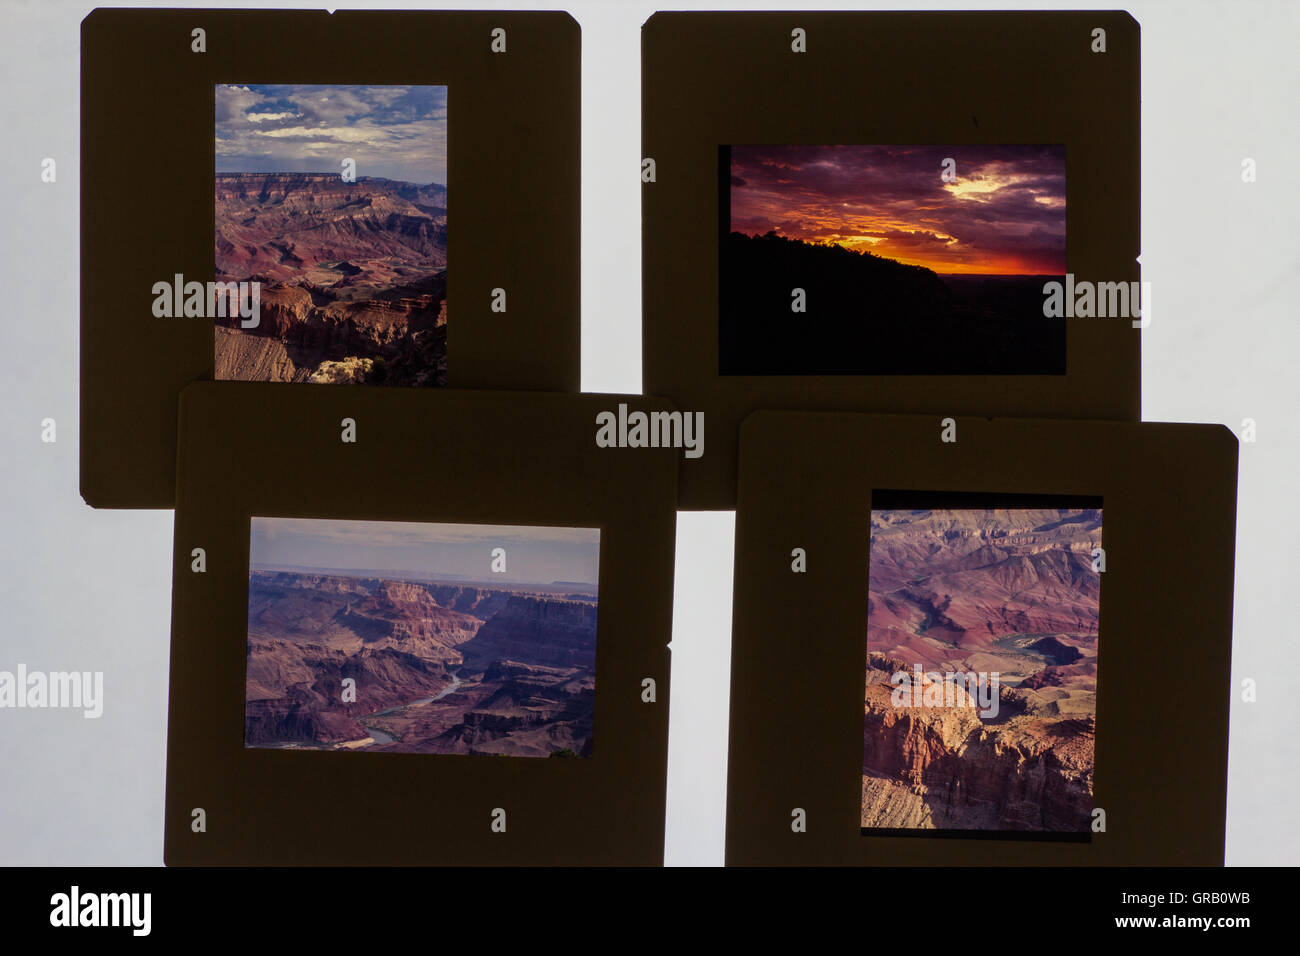 Grand Canyon Photographs In Picture Frame Against White Background ...